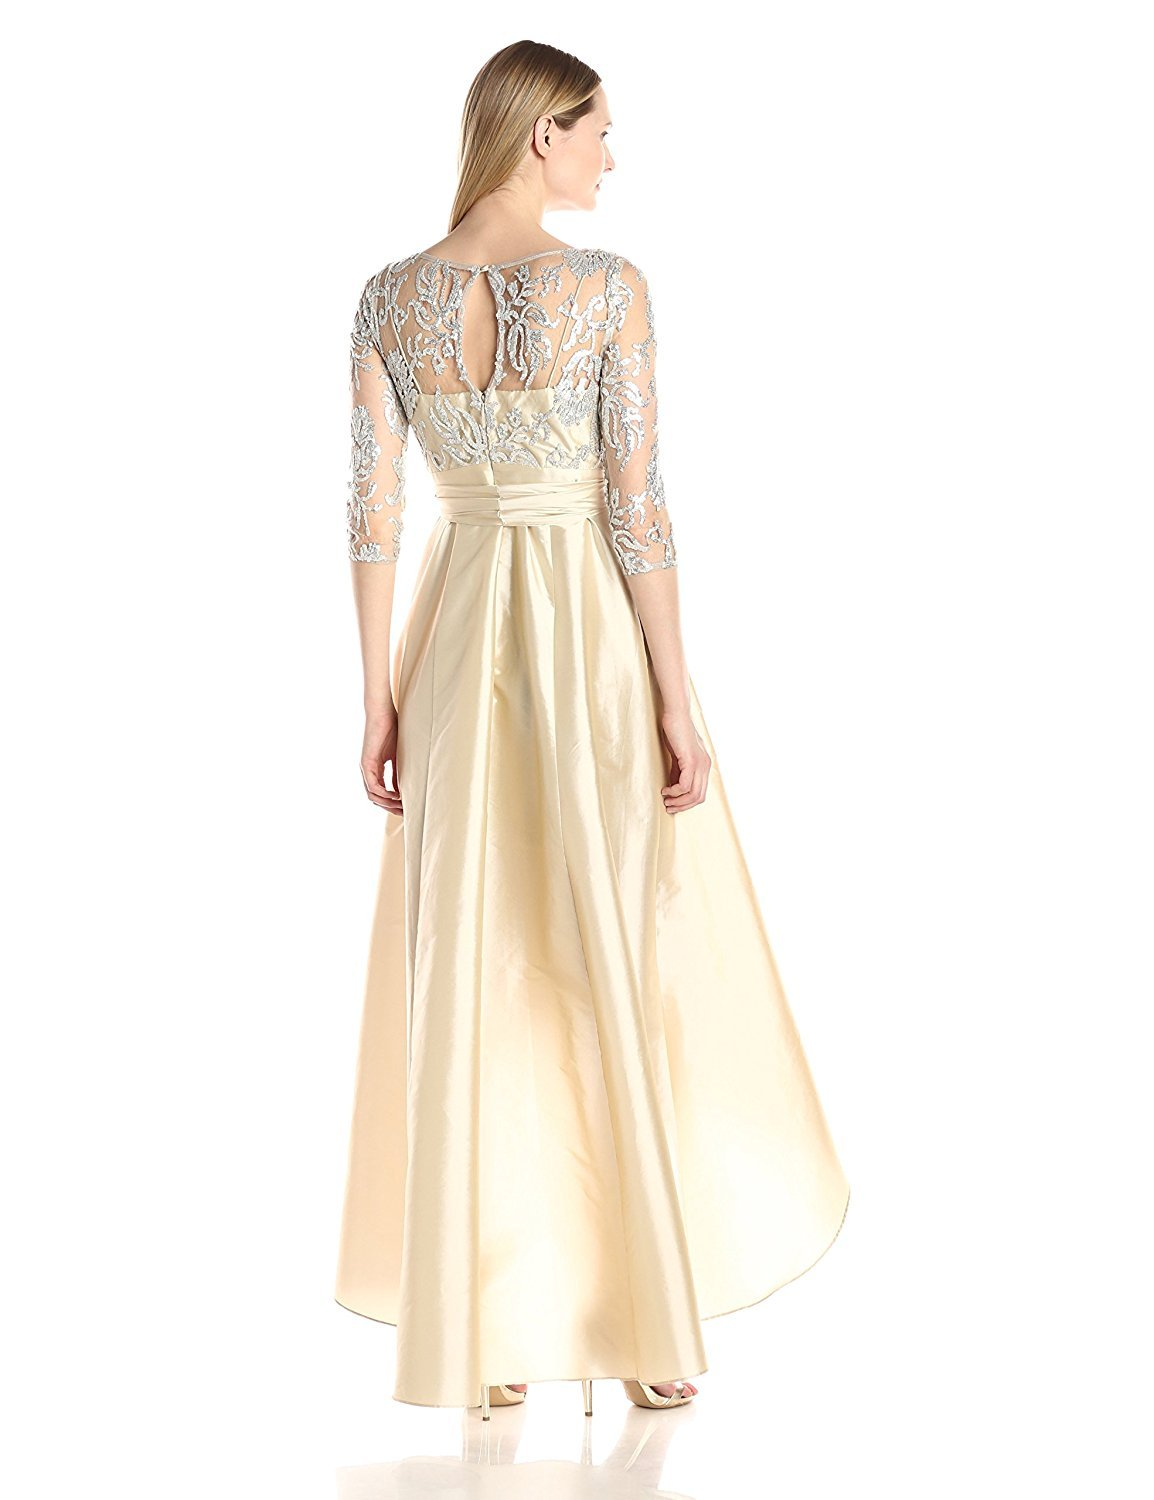 Adrianna Papell Women's Sequin Illusion High Low Gown With Taffeta Skirt, Champagne, 6